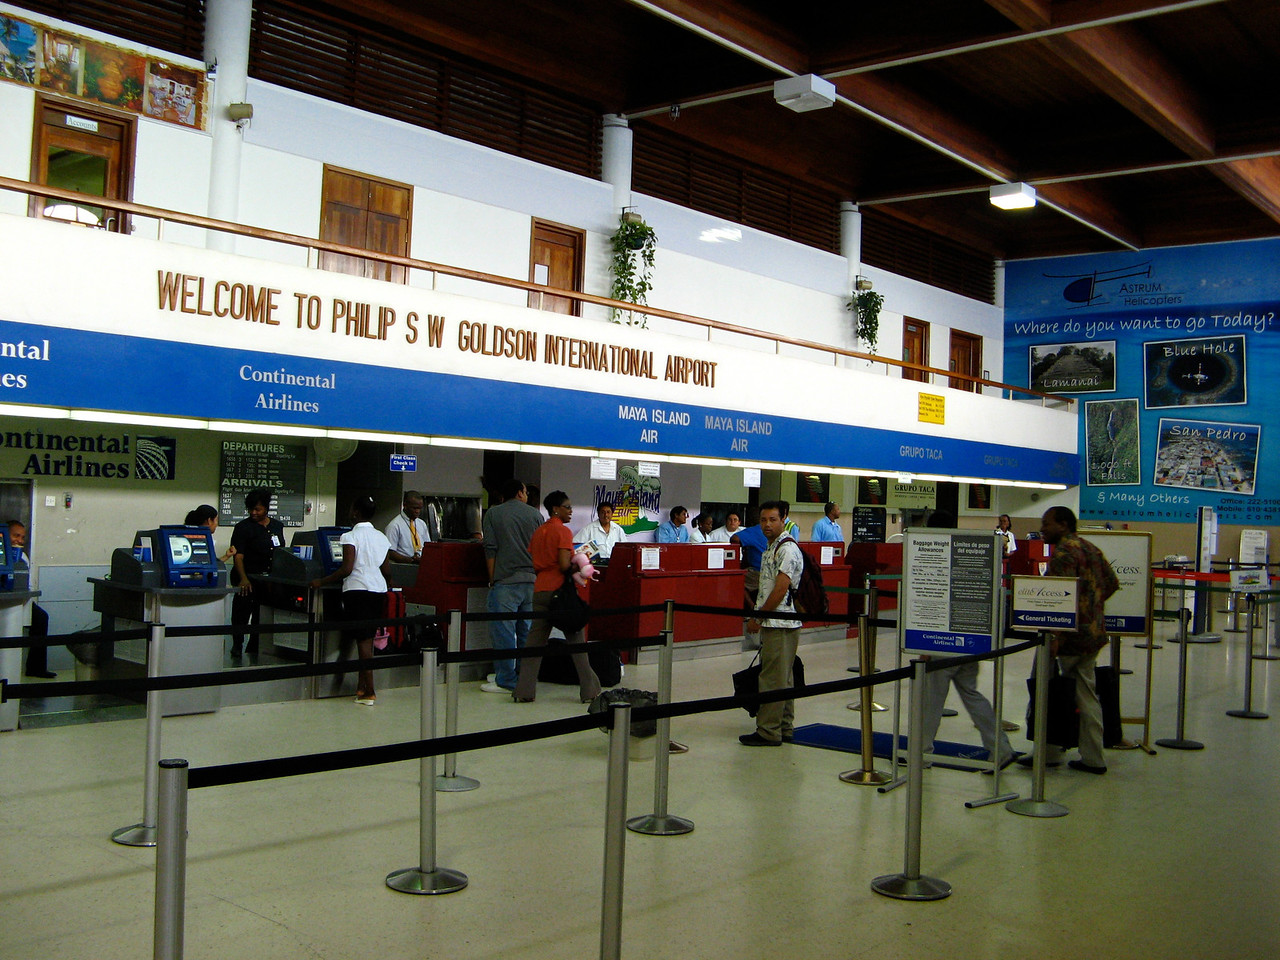 This is the terminal at the Belize City airport.